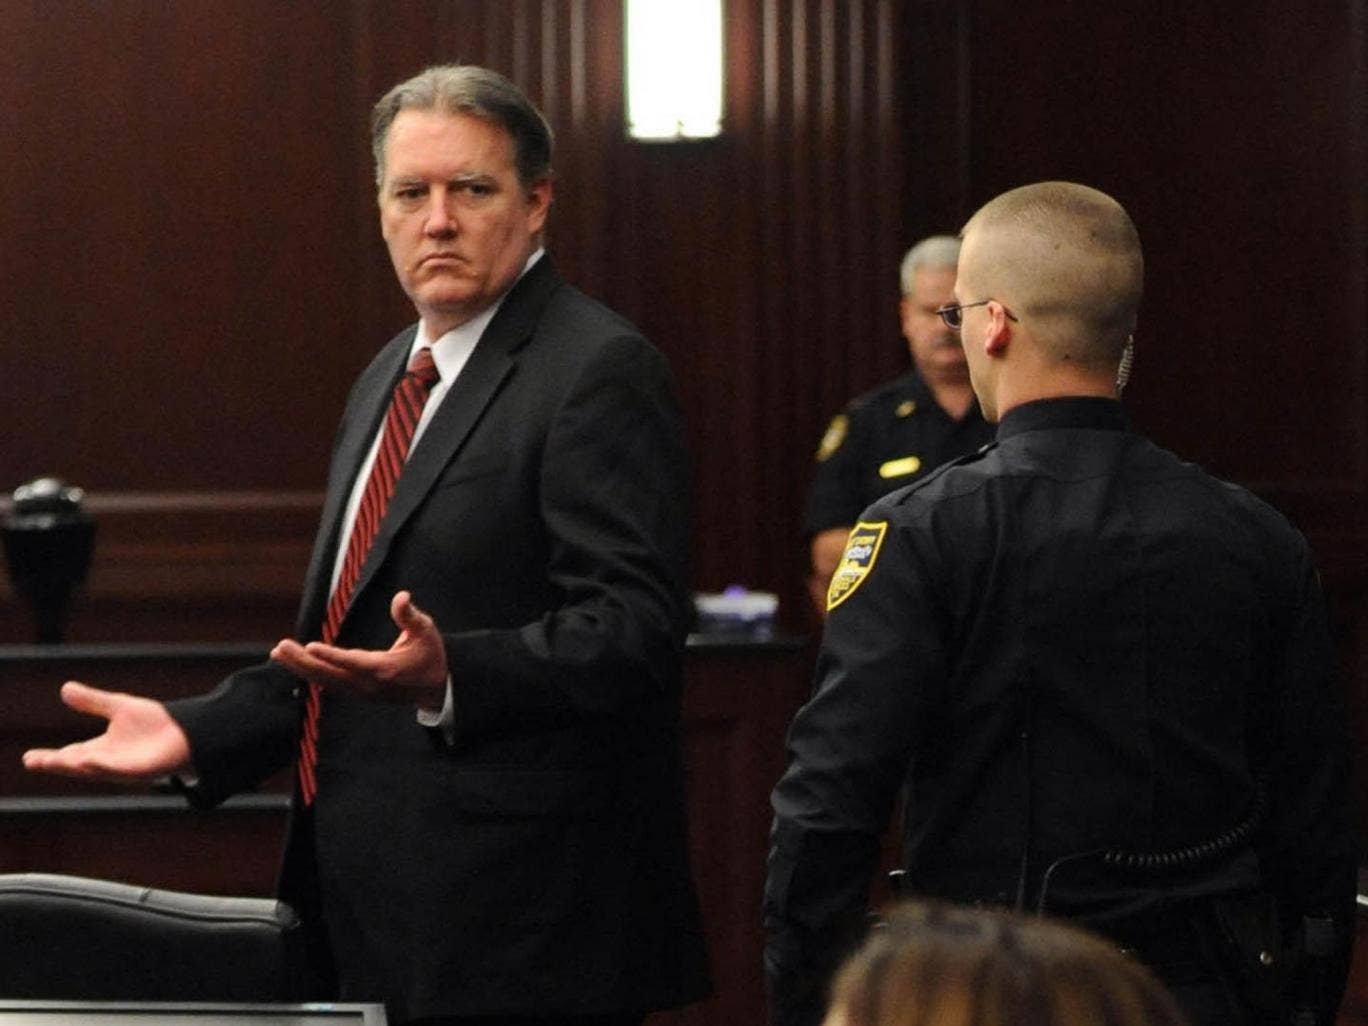 Michael Dunn reacts to the verdict in his trial for the murder of Jordan Davis